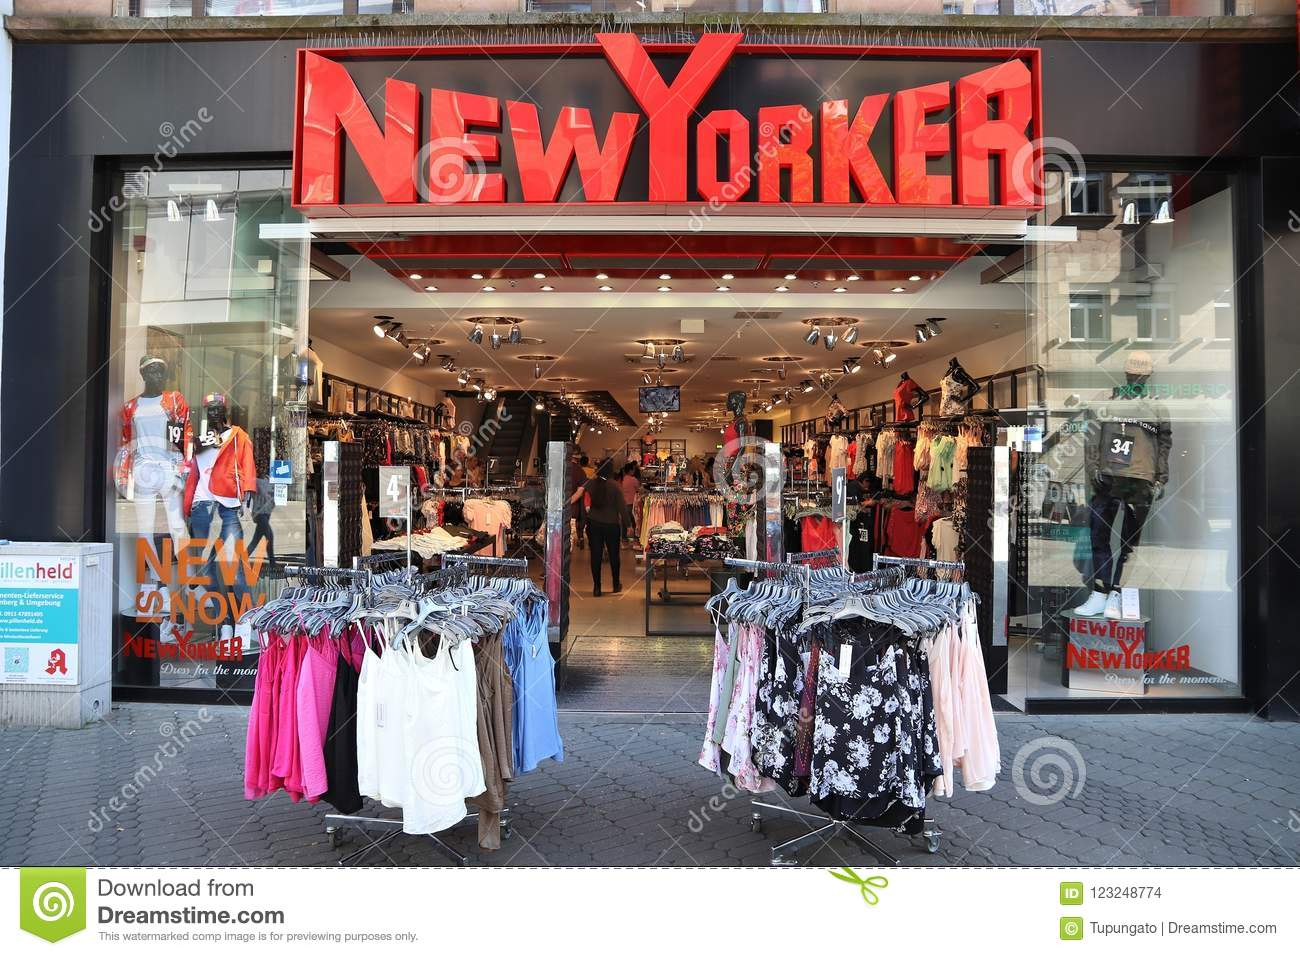 14cd2f508b NUREMBERG, GERMANY - MAY 7, 2018: People visit New Yorker fashion store at  Karolinenstrasse shopping street in Nuremberg, Germany.